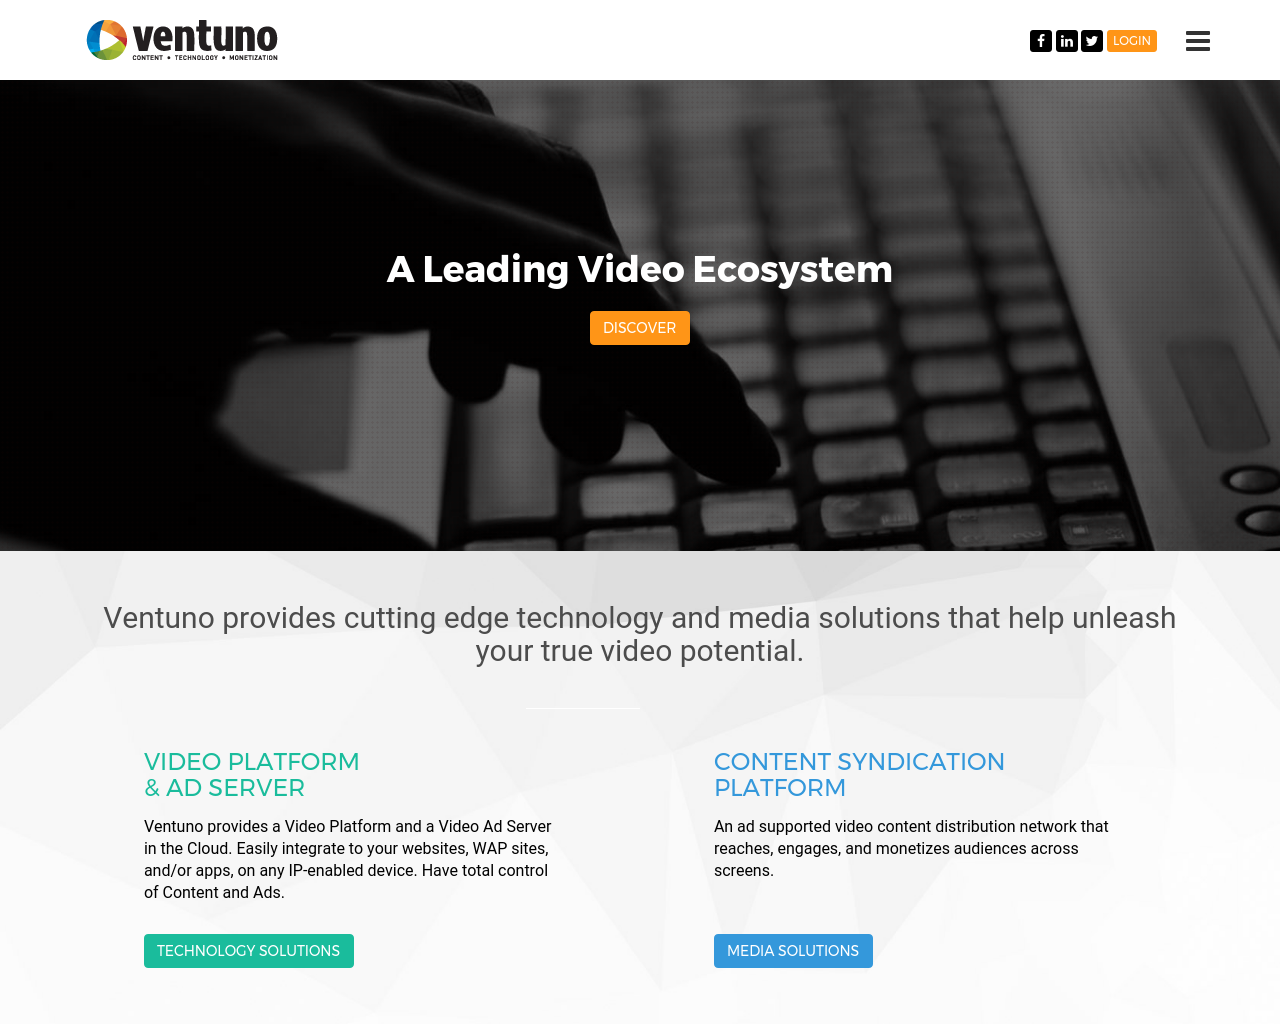 Ventuno-Advertising-Reviews-Pricing